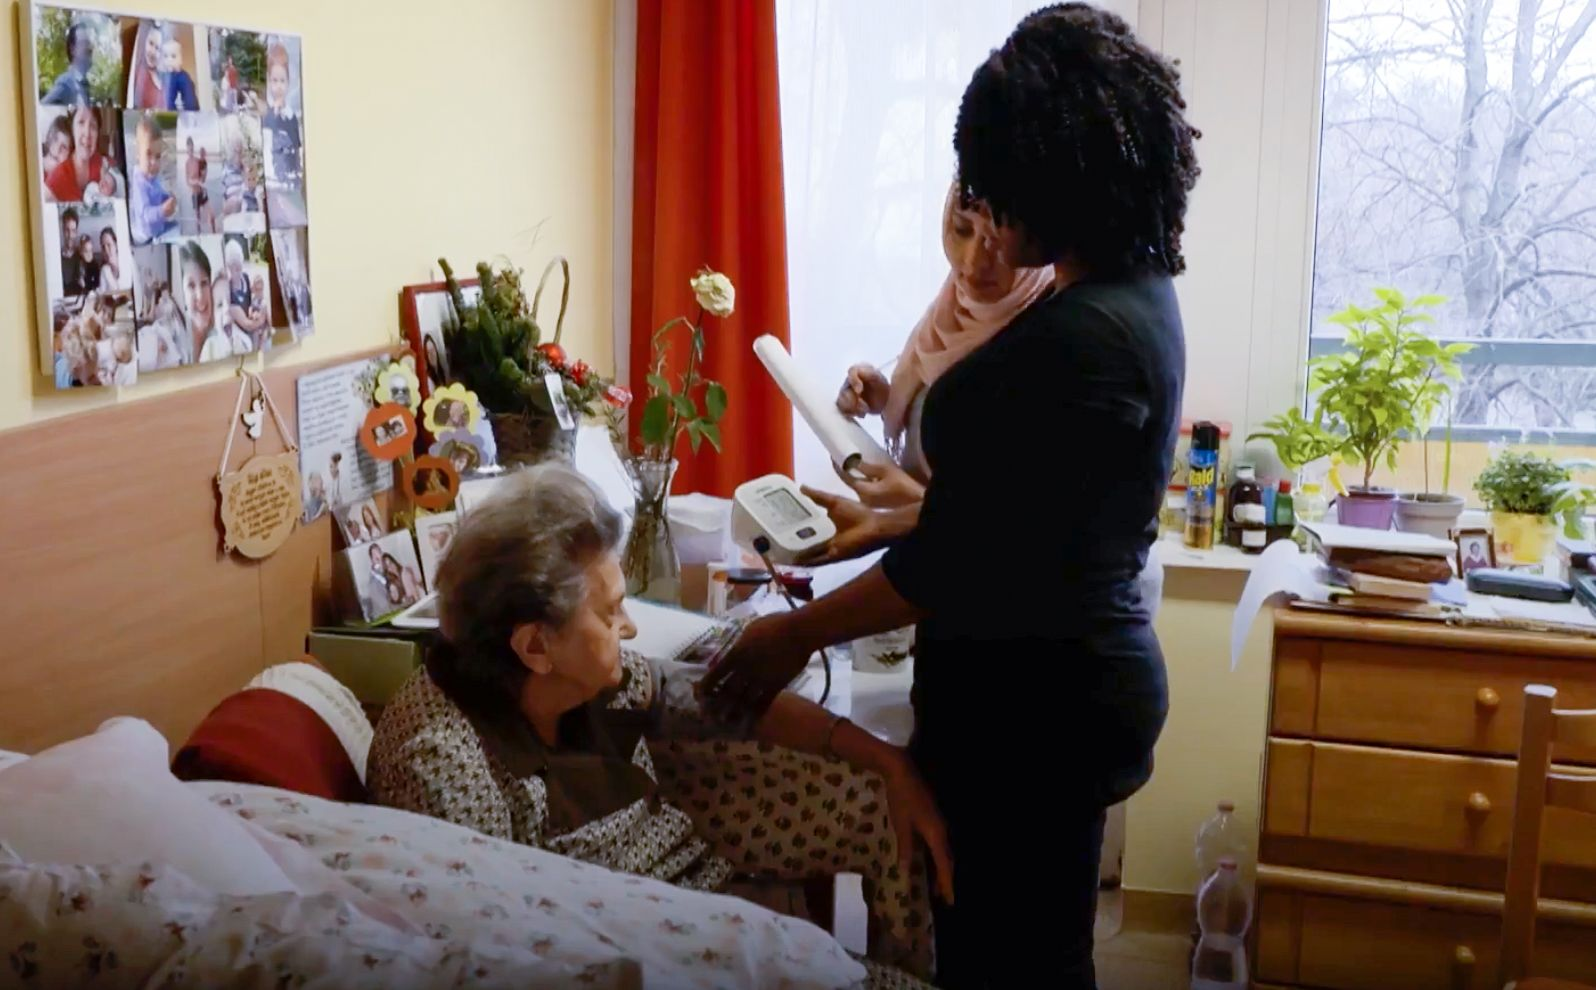 How to become a caregiver in Italy